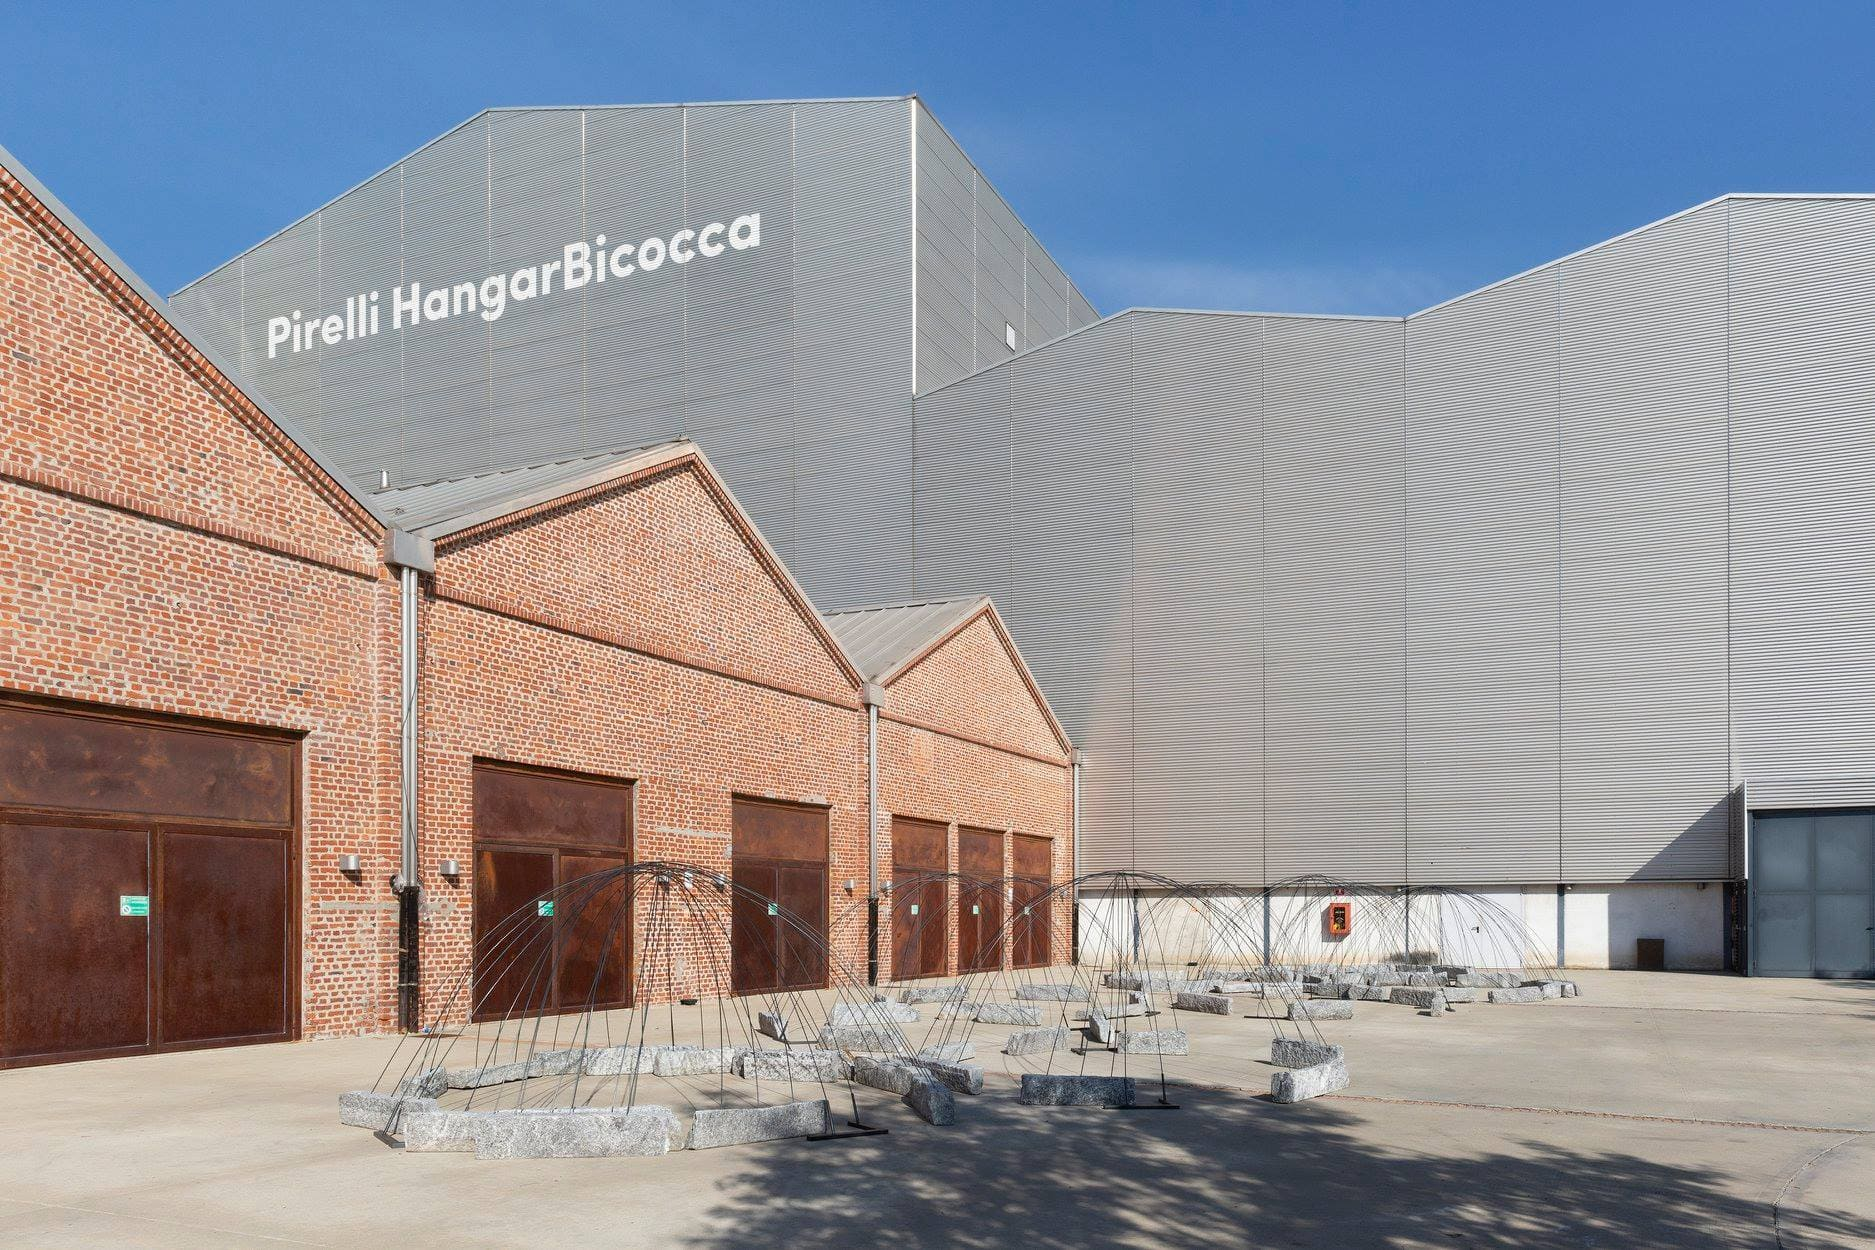 exterior image of the pirelli hangarbicocca italian art gallery in milan